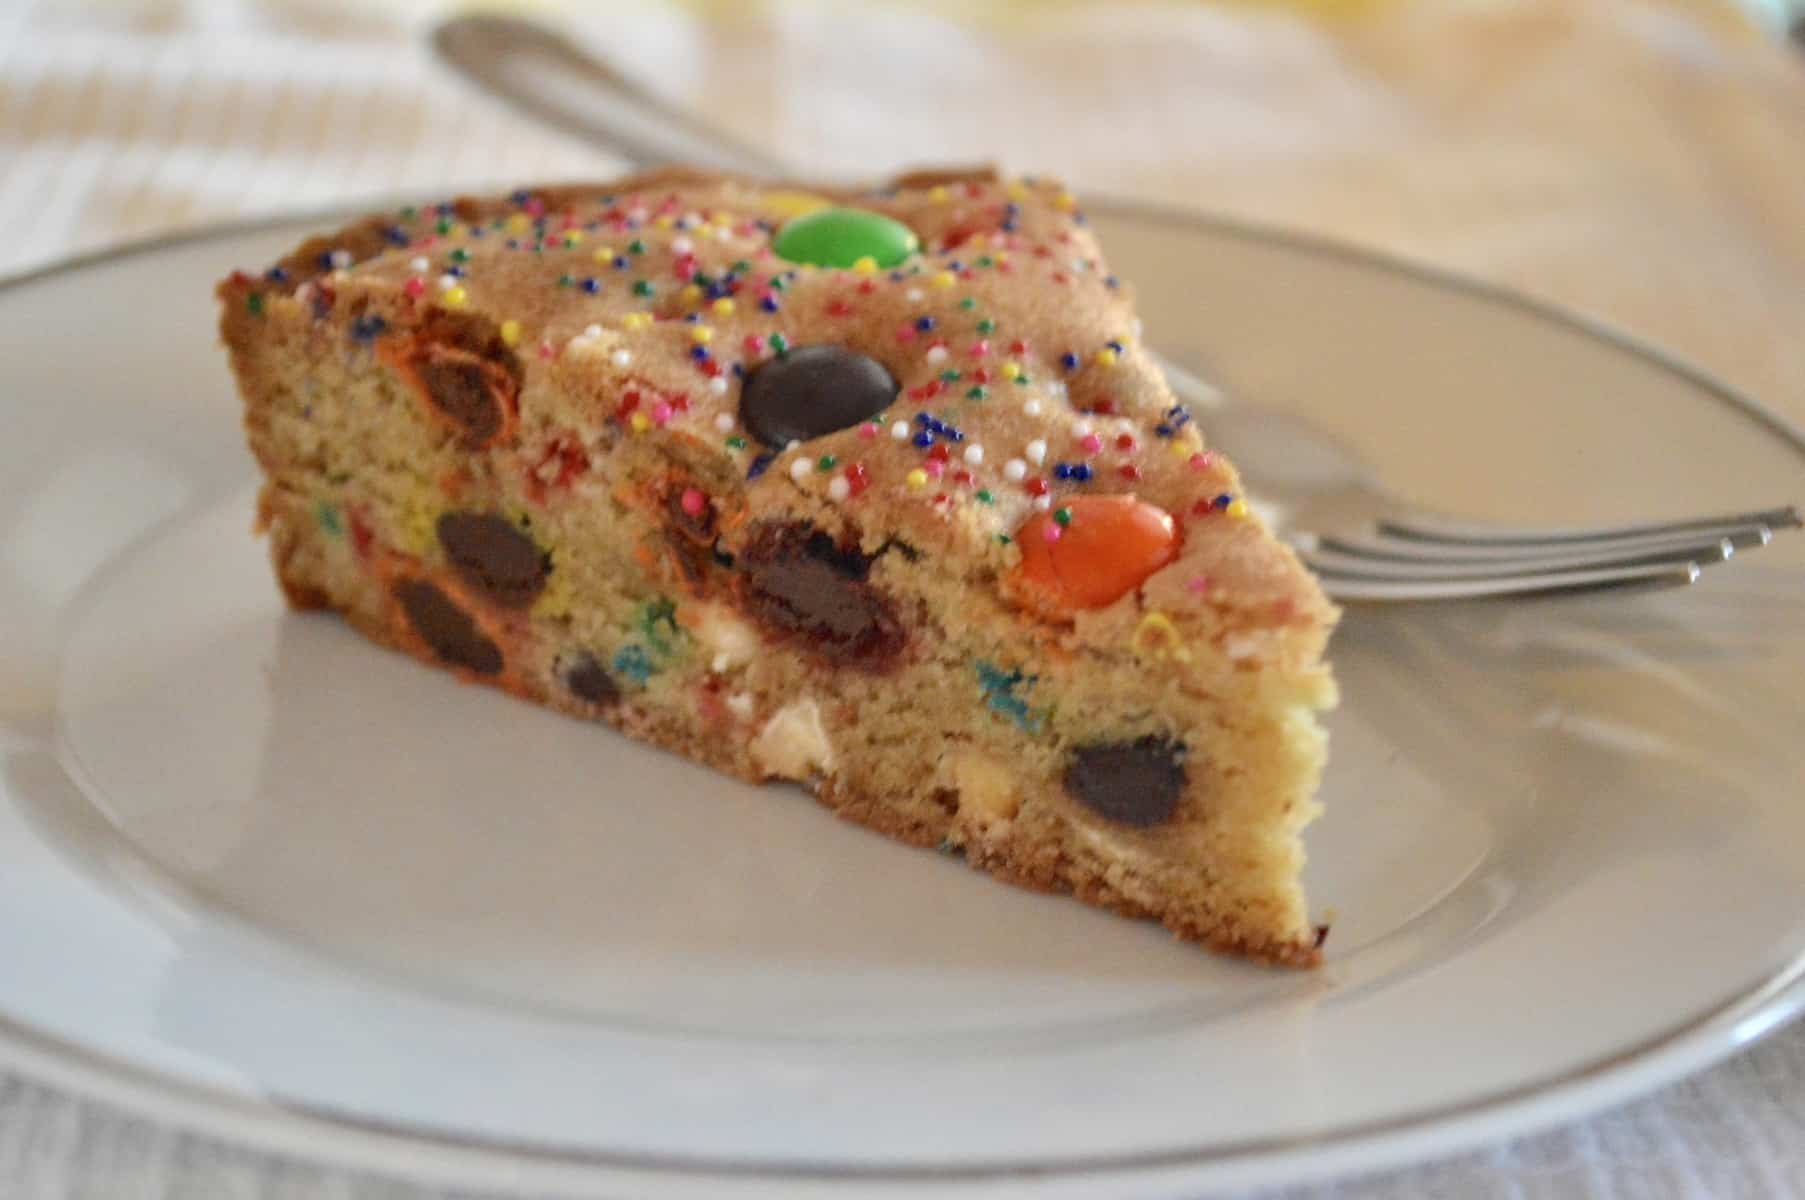 Loaded Cookie Pie with M&M's and sprinkles